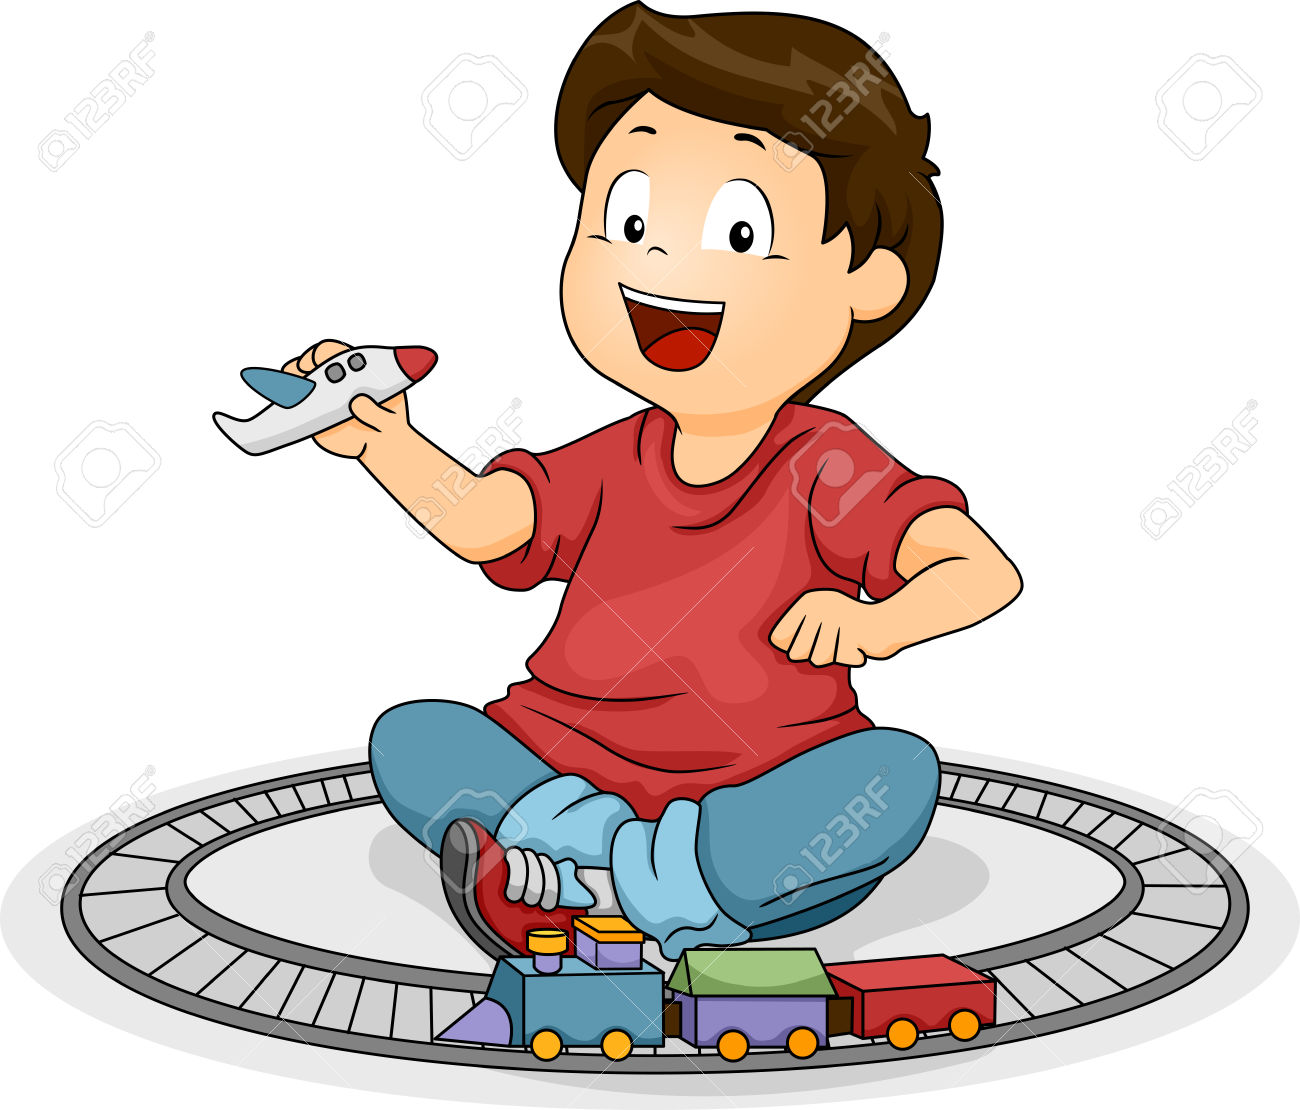 Illustration Of A Kid Boy Playng With His Toys Stock Photo.